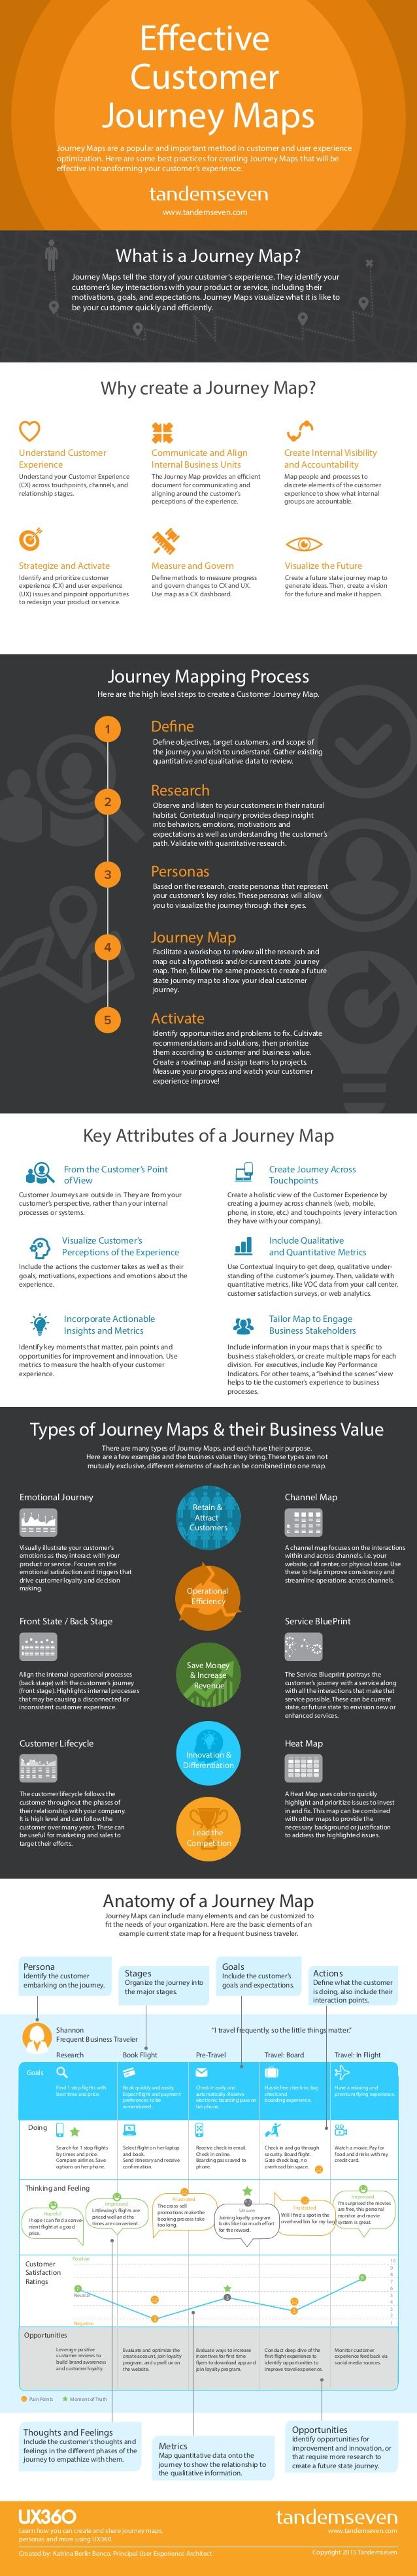 Journey Mapping Process Effective Customer Journey Maps Based on the research, create personas that represent your custome...